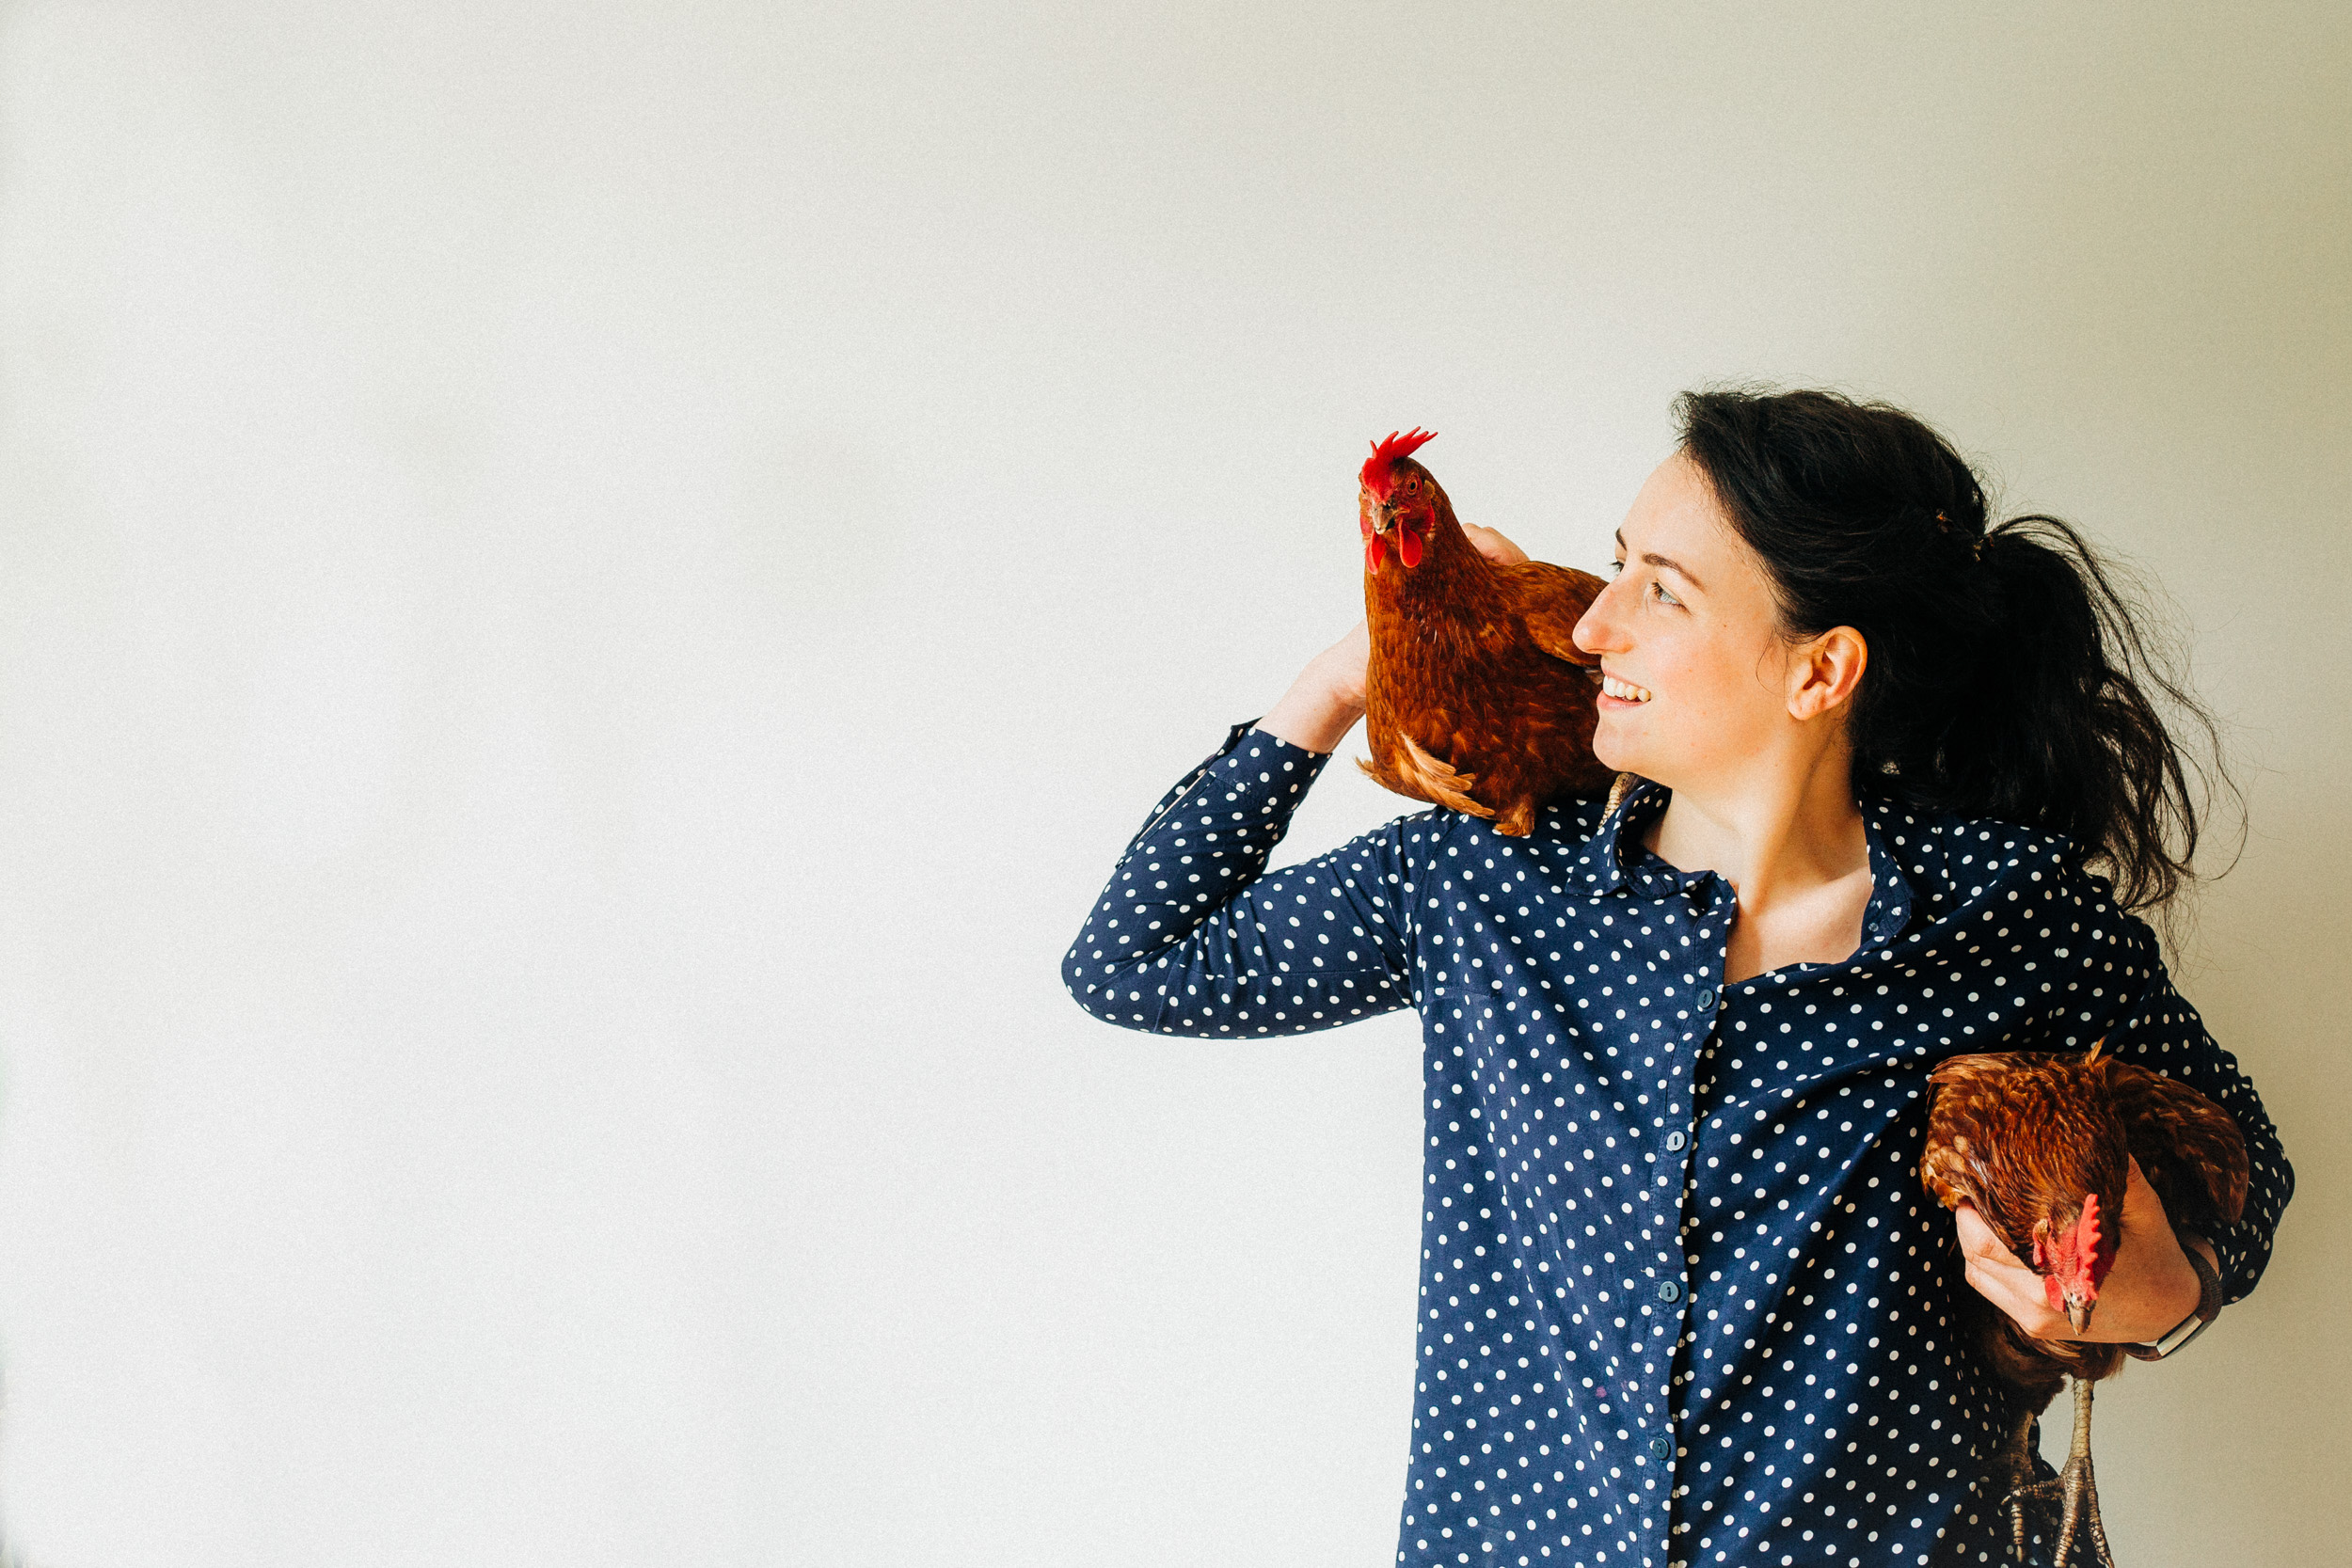 Cardiff Photographer Alex Sedgmond - Photography South Wales - Emily Levey & Chickens-2.jpg